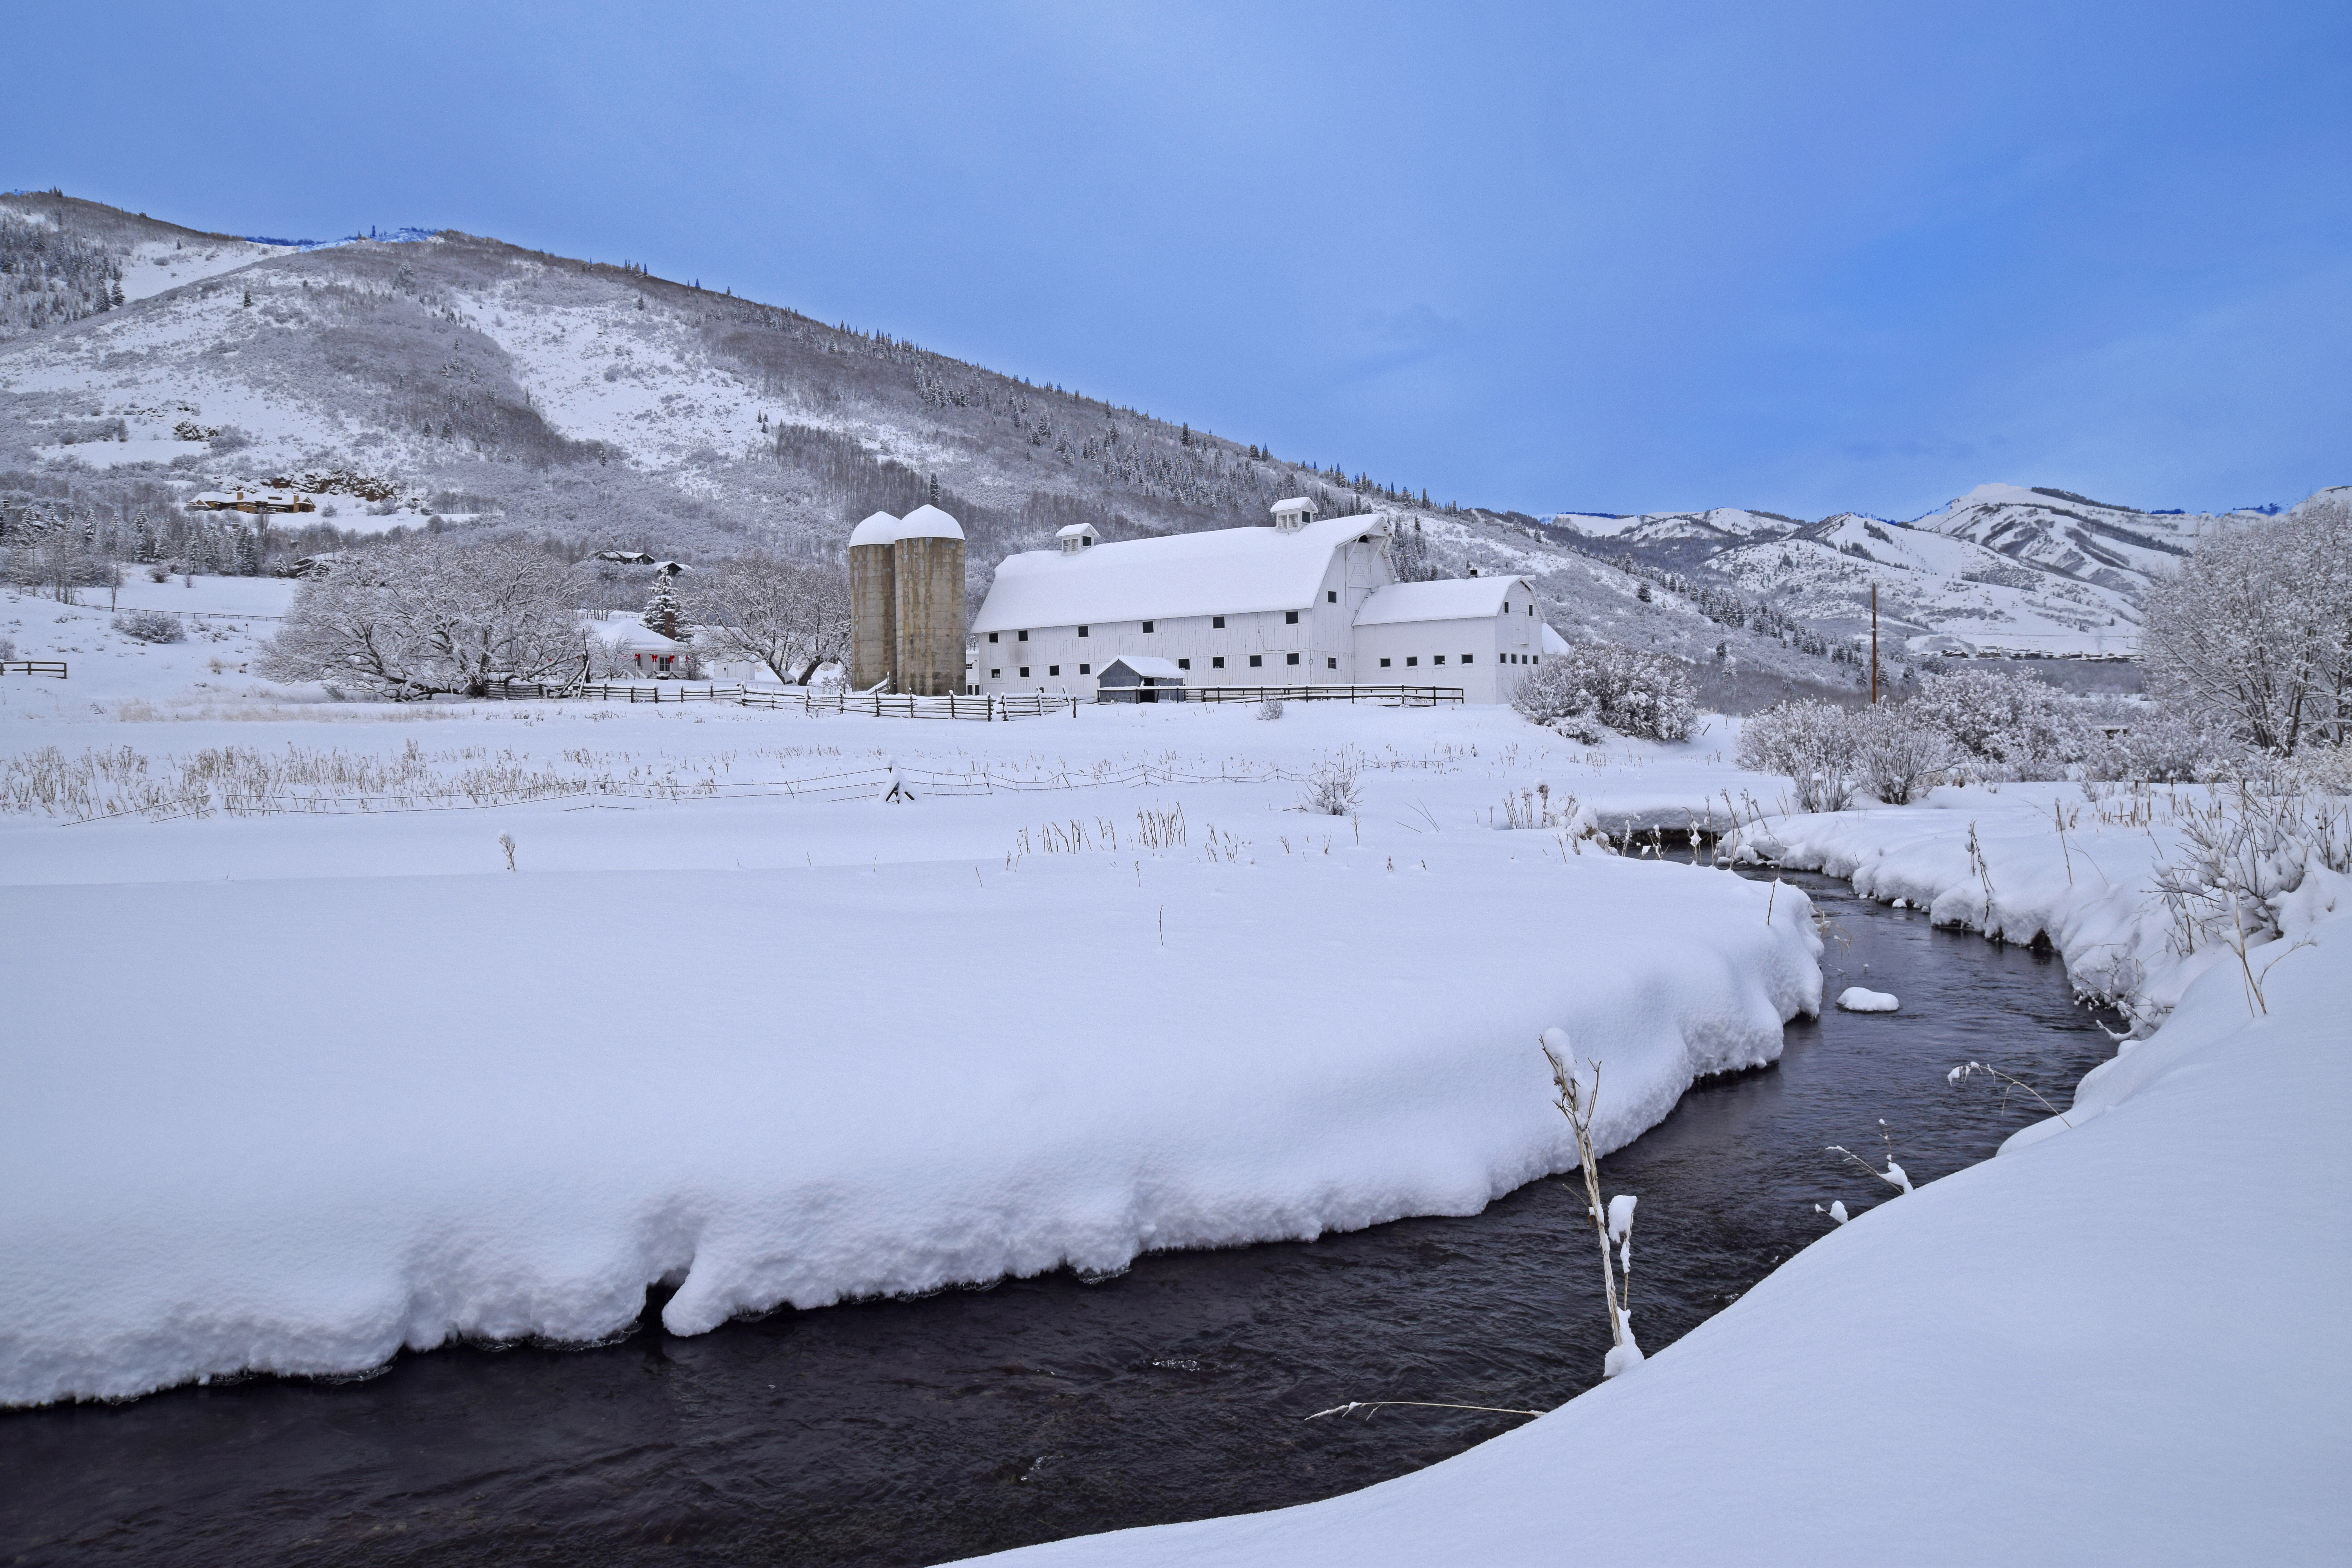 Park City White Barn Winter Picture in Deer Valley, Canyons